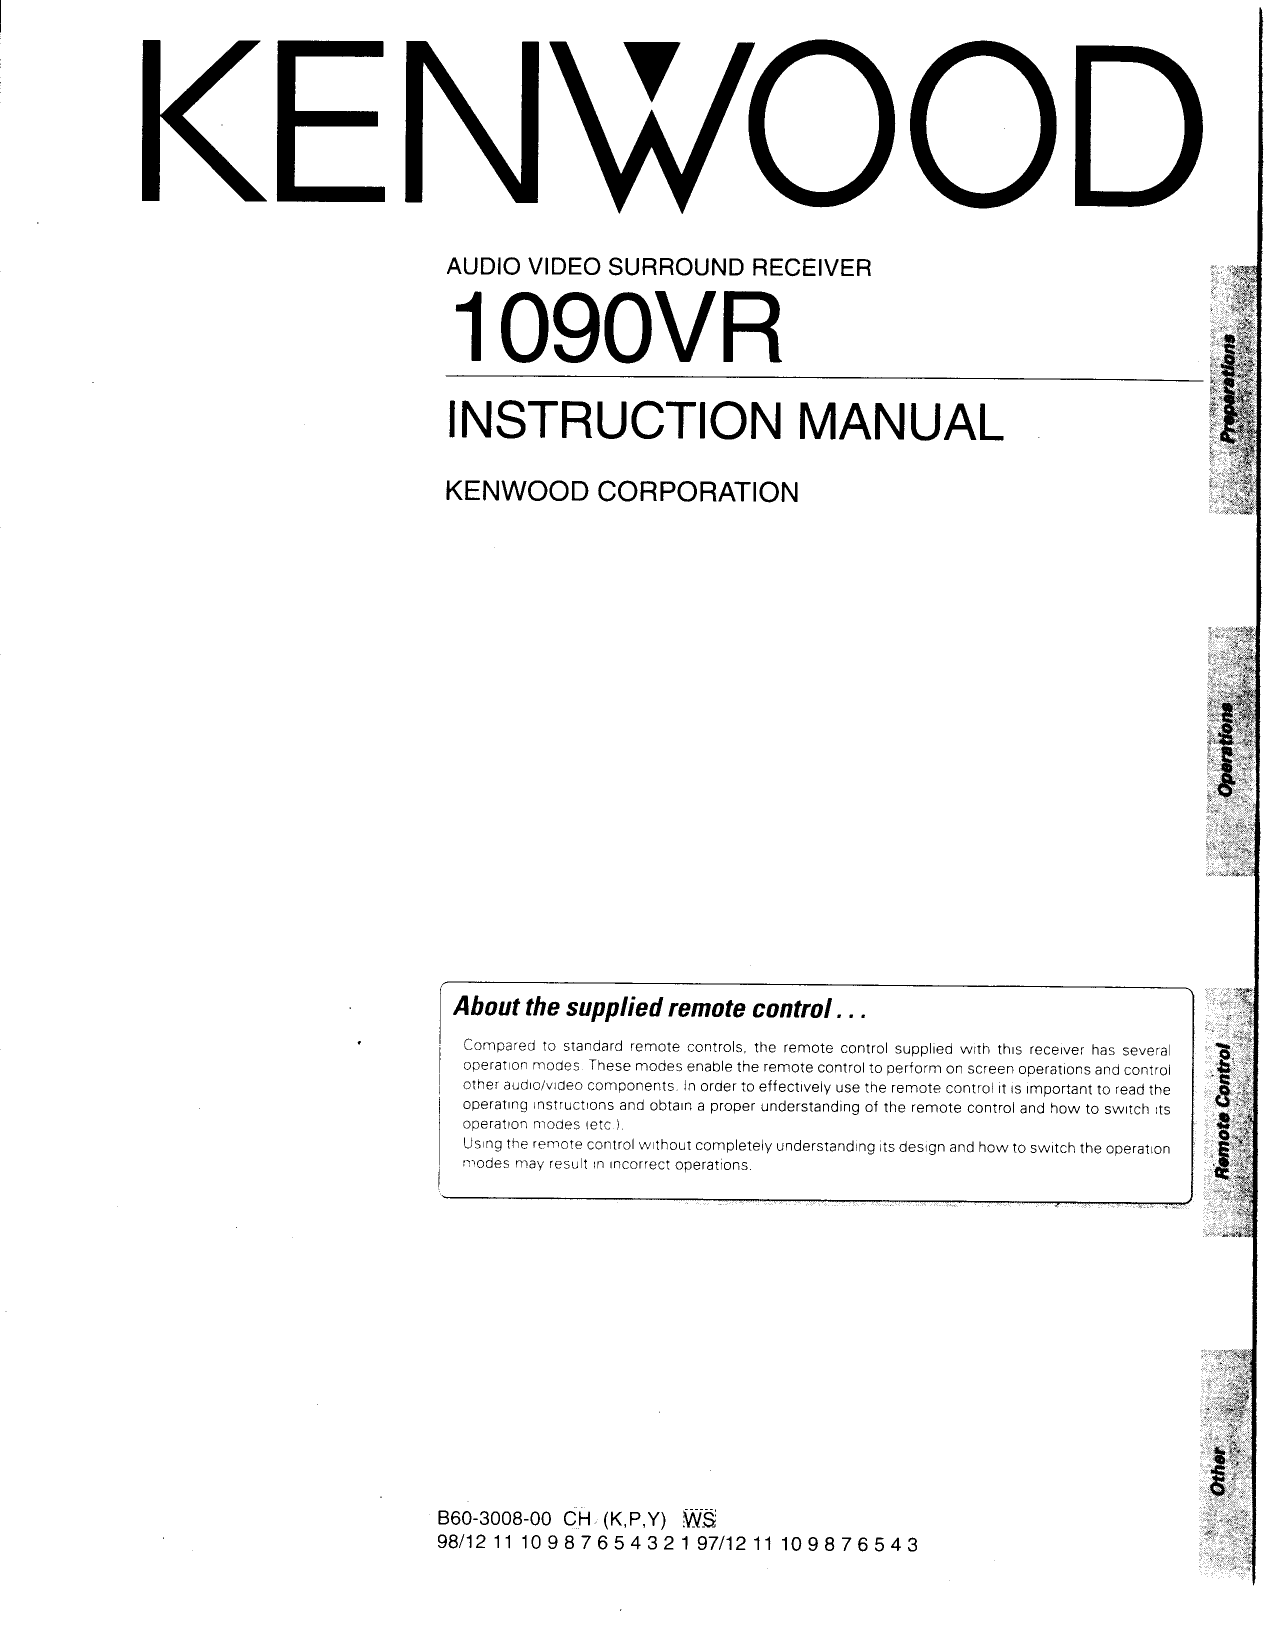 Wiring Diagram For Kenwood Vr 405 : Download free pdf for kenwood klicker remote control manual